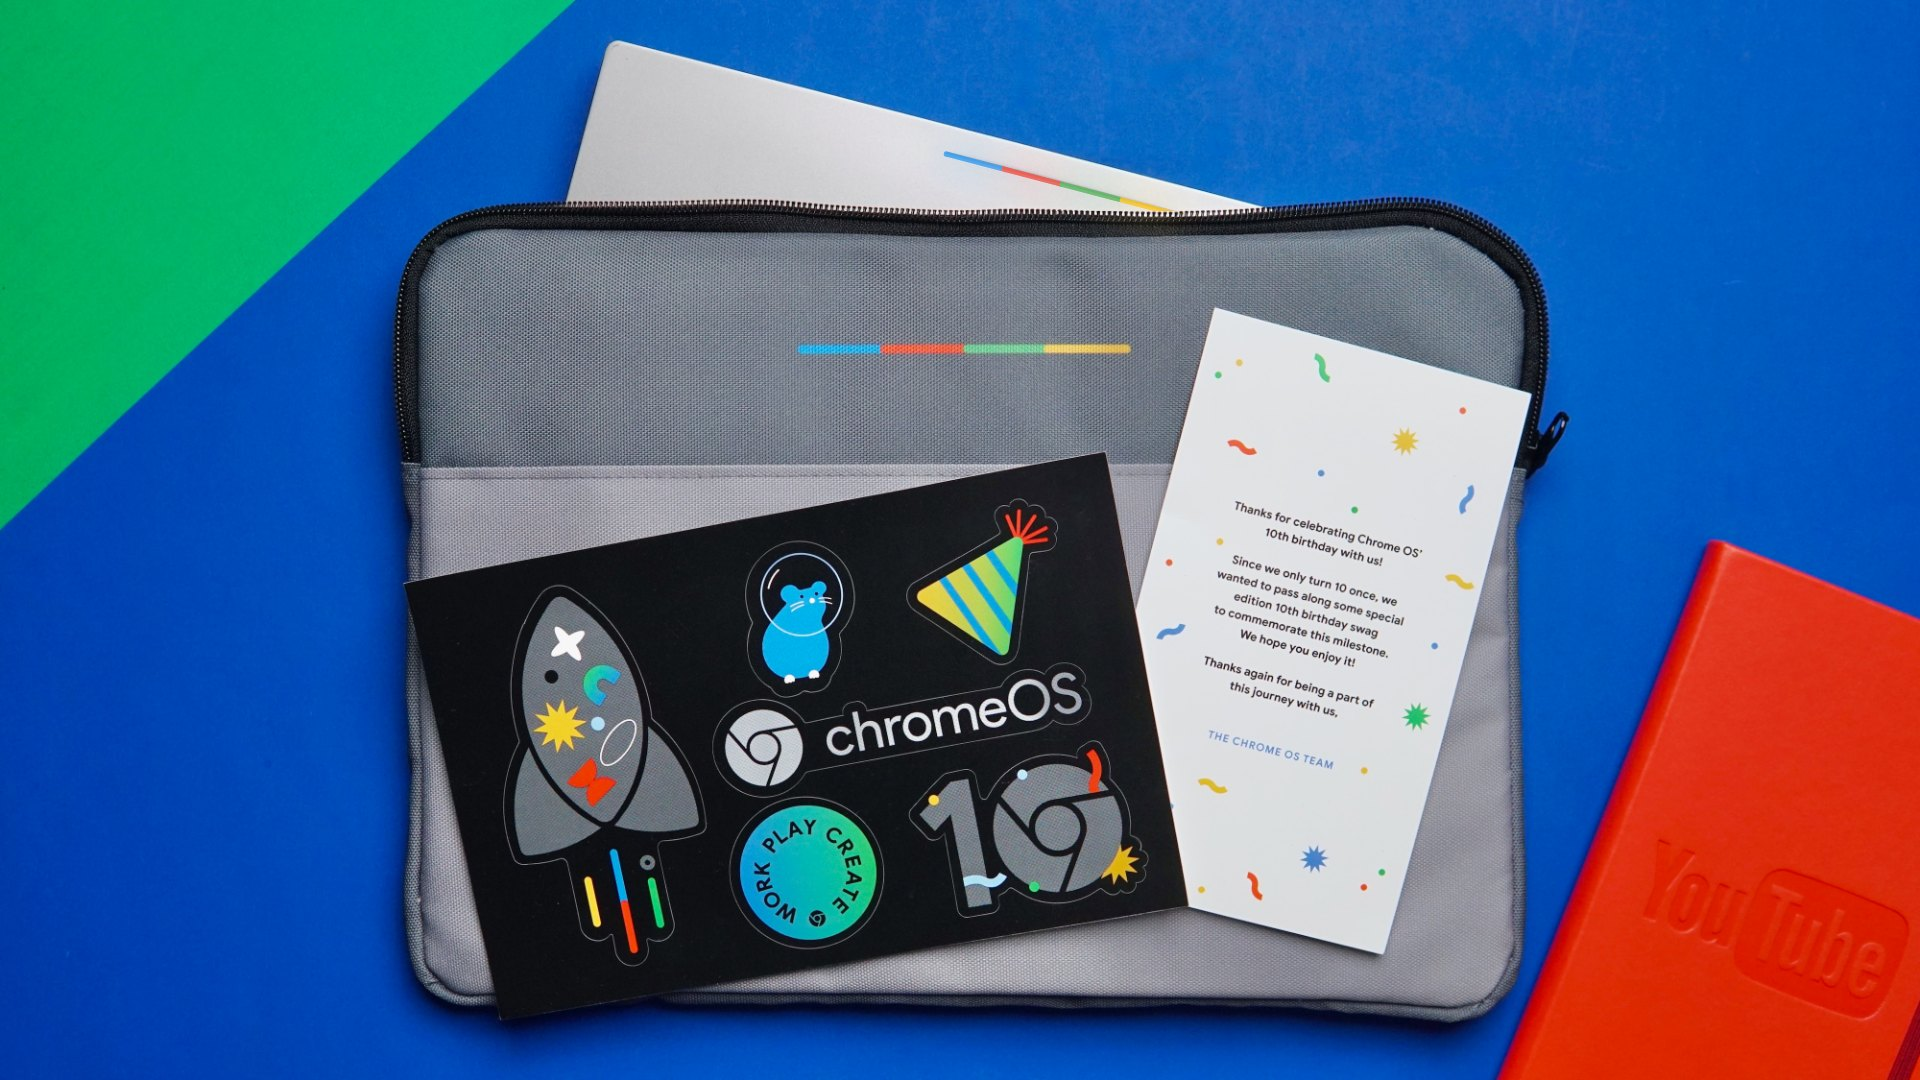 Chrome OS turns 10 & we've partnered with Google for a very special giveaway to celebrate